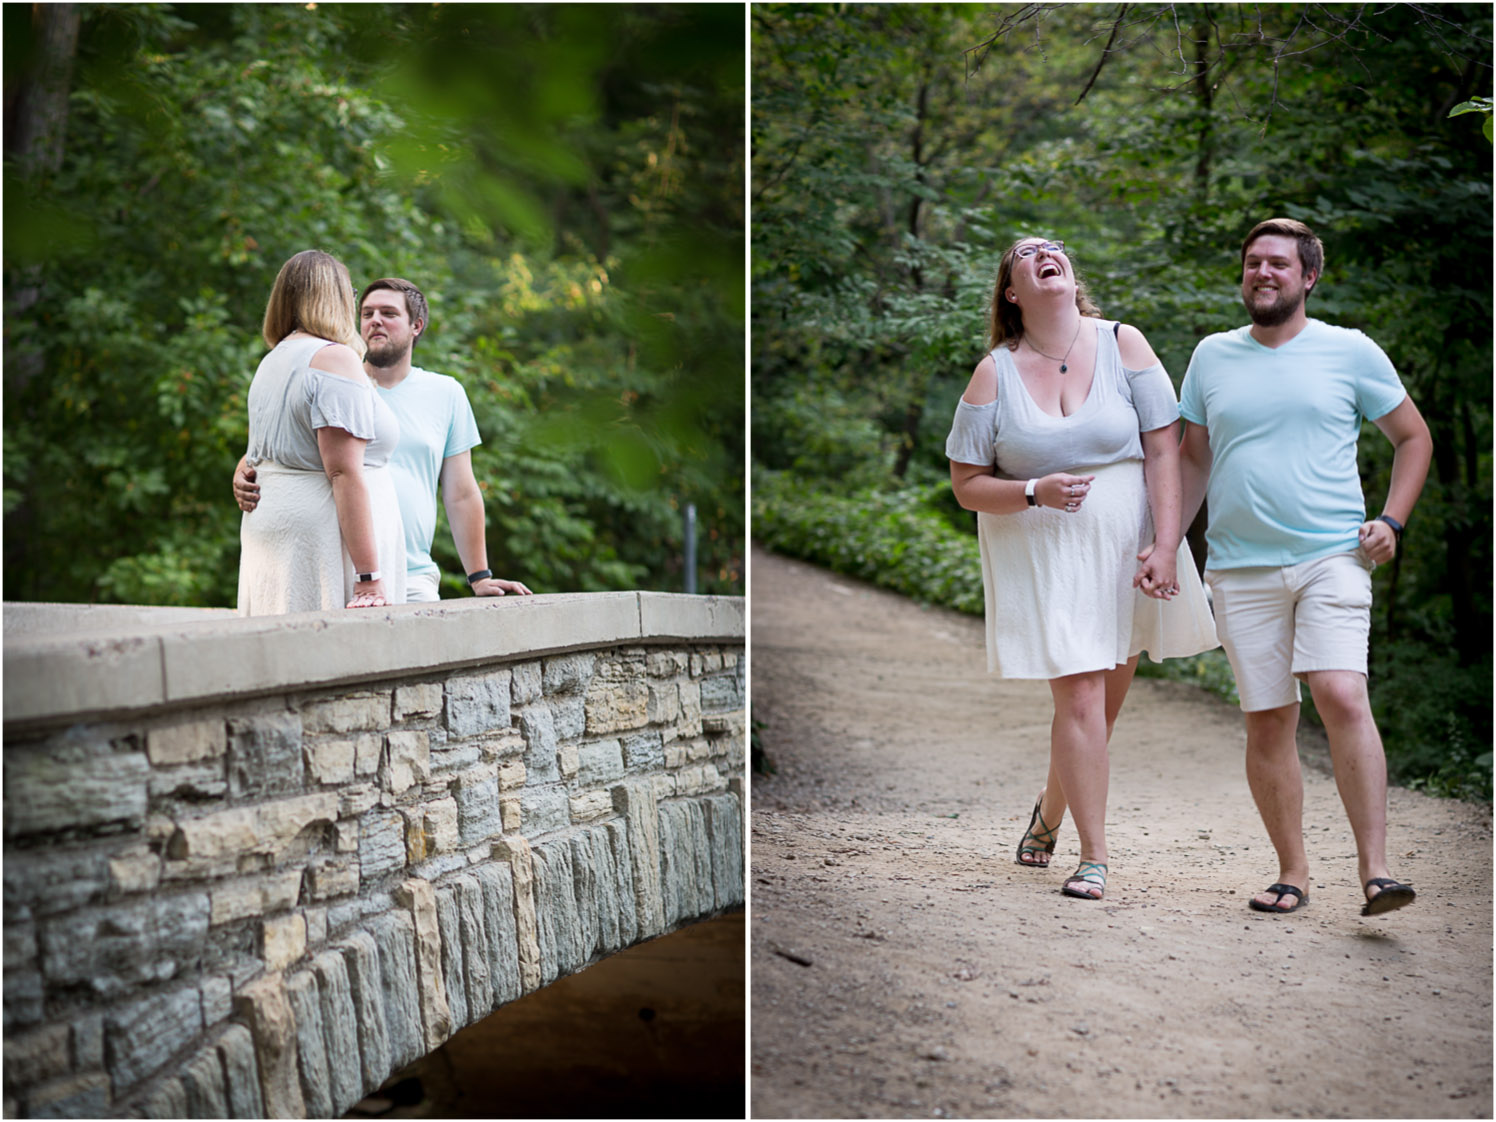 03-minnehaha-falls-minneapolis-wedding-photographer-summer-engagement-photos-unposed-laughter-candid-portrait-bridge-mahonen-photography.jpg